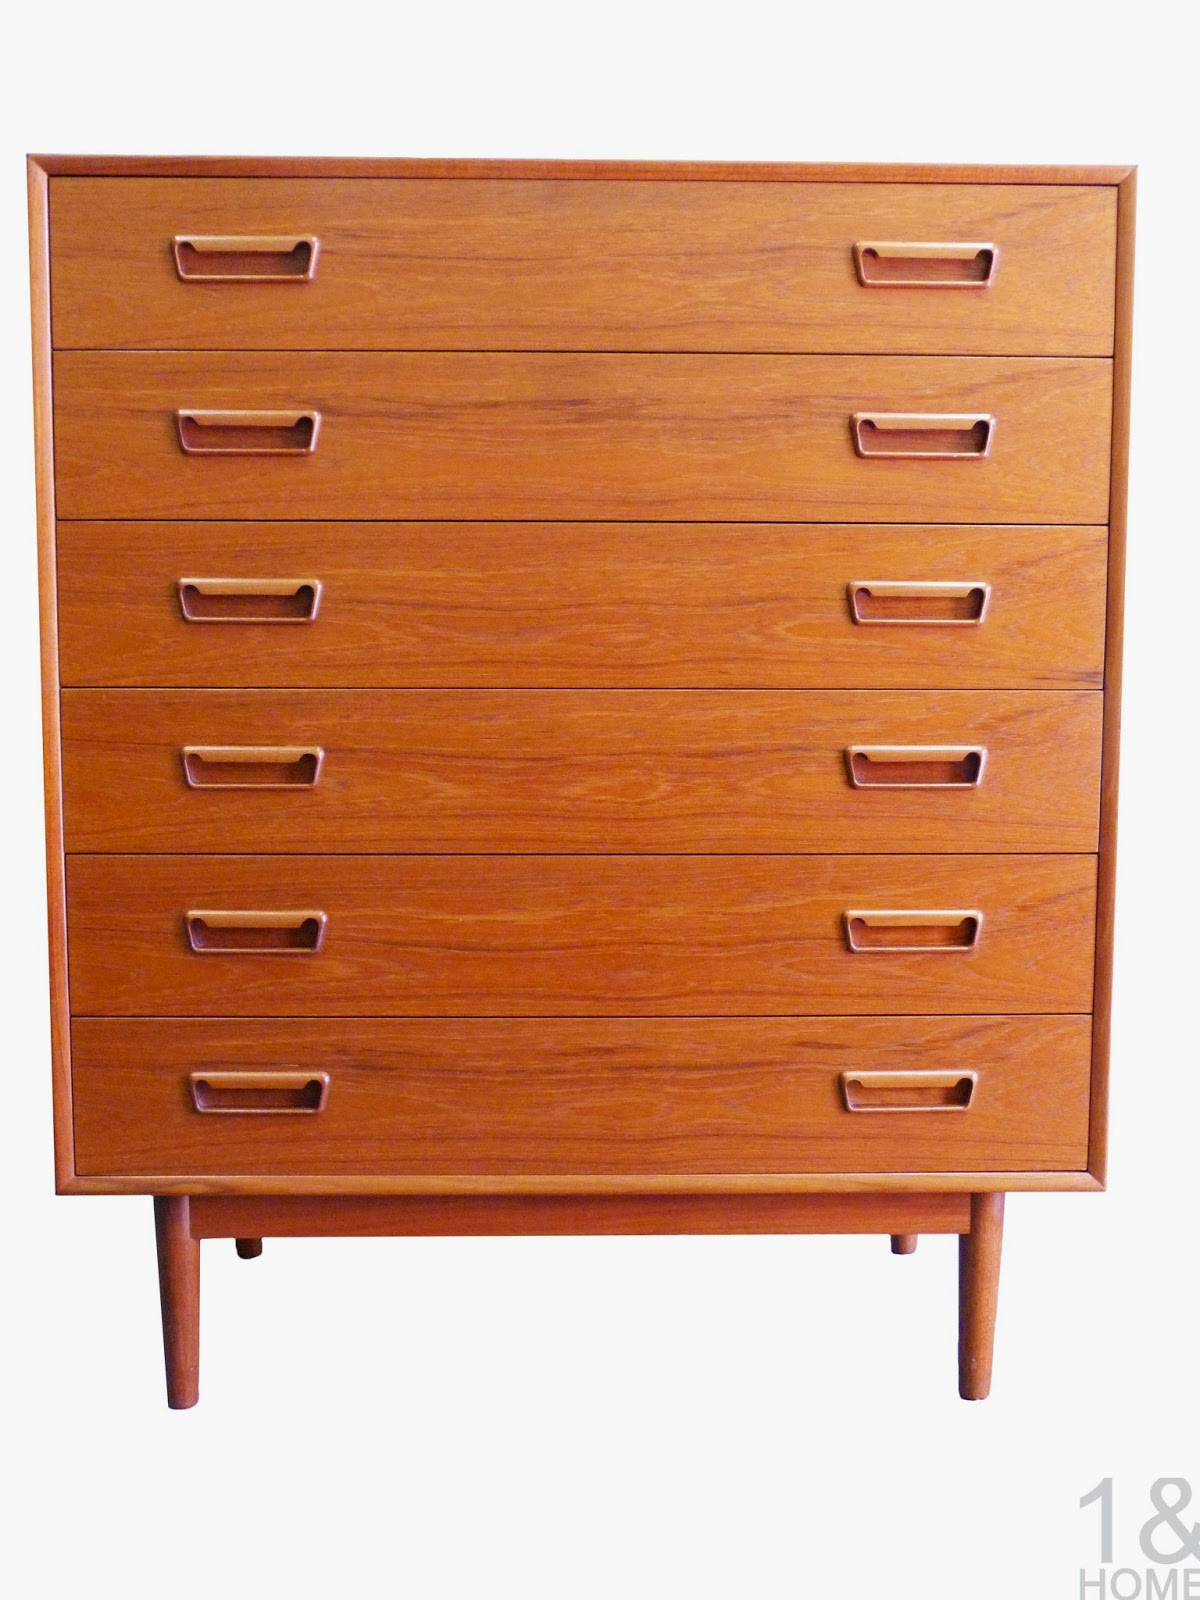 Westnofa Danish Modern Mid-Century six drawer dresser chest